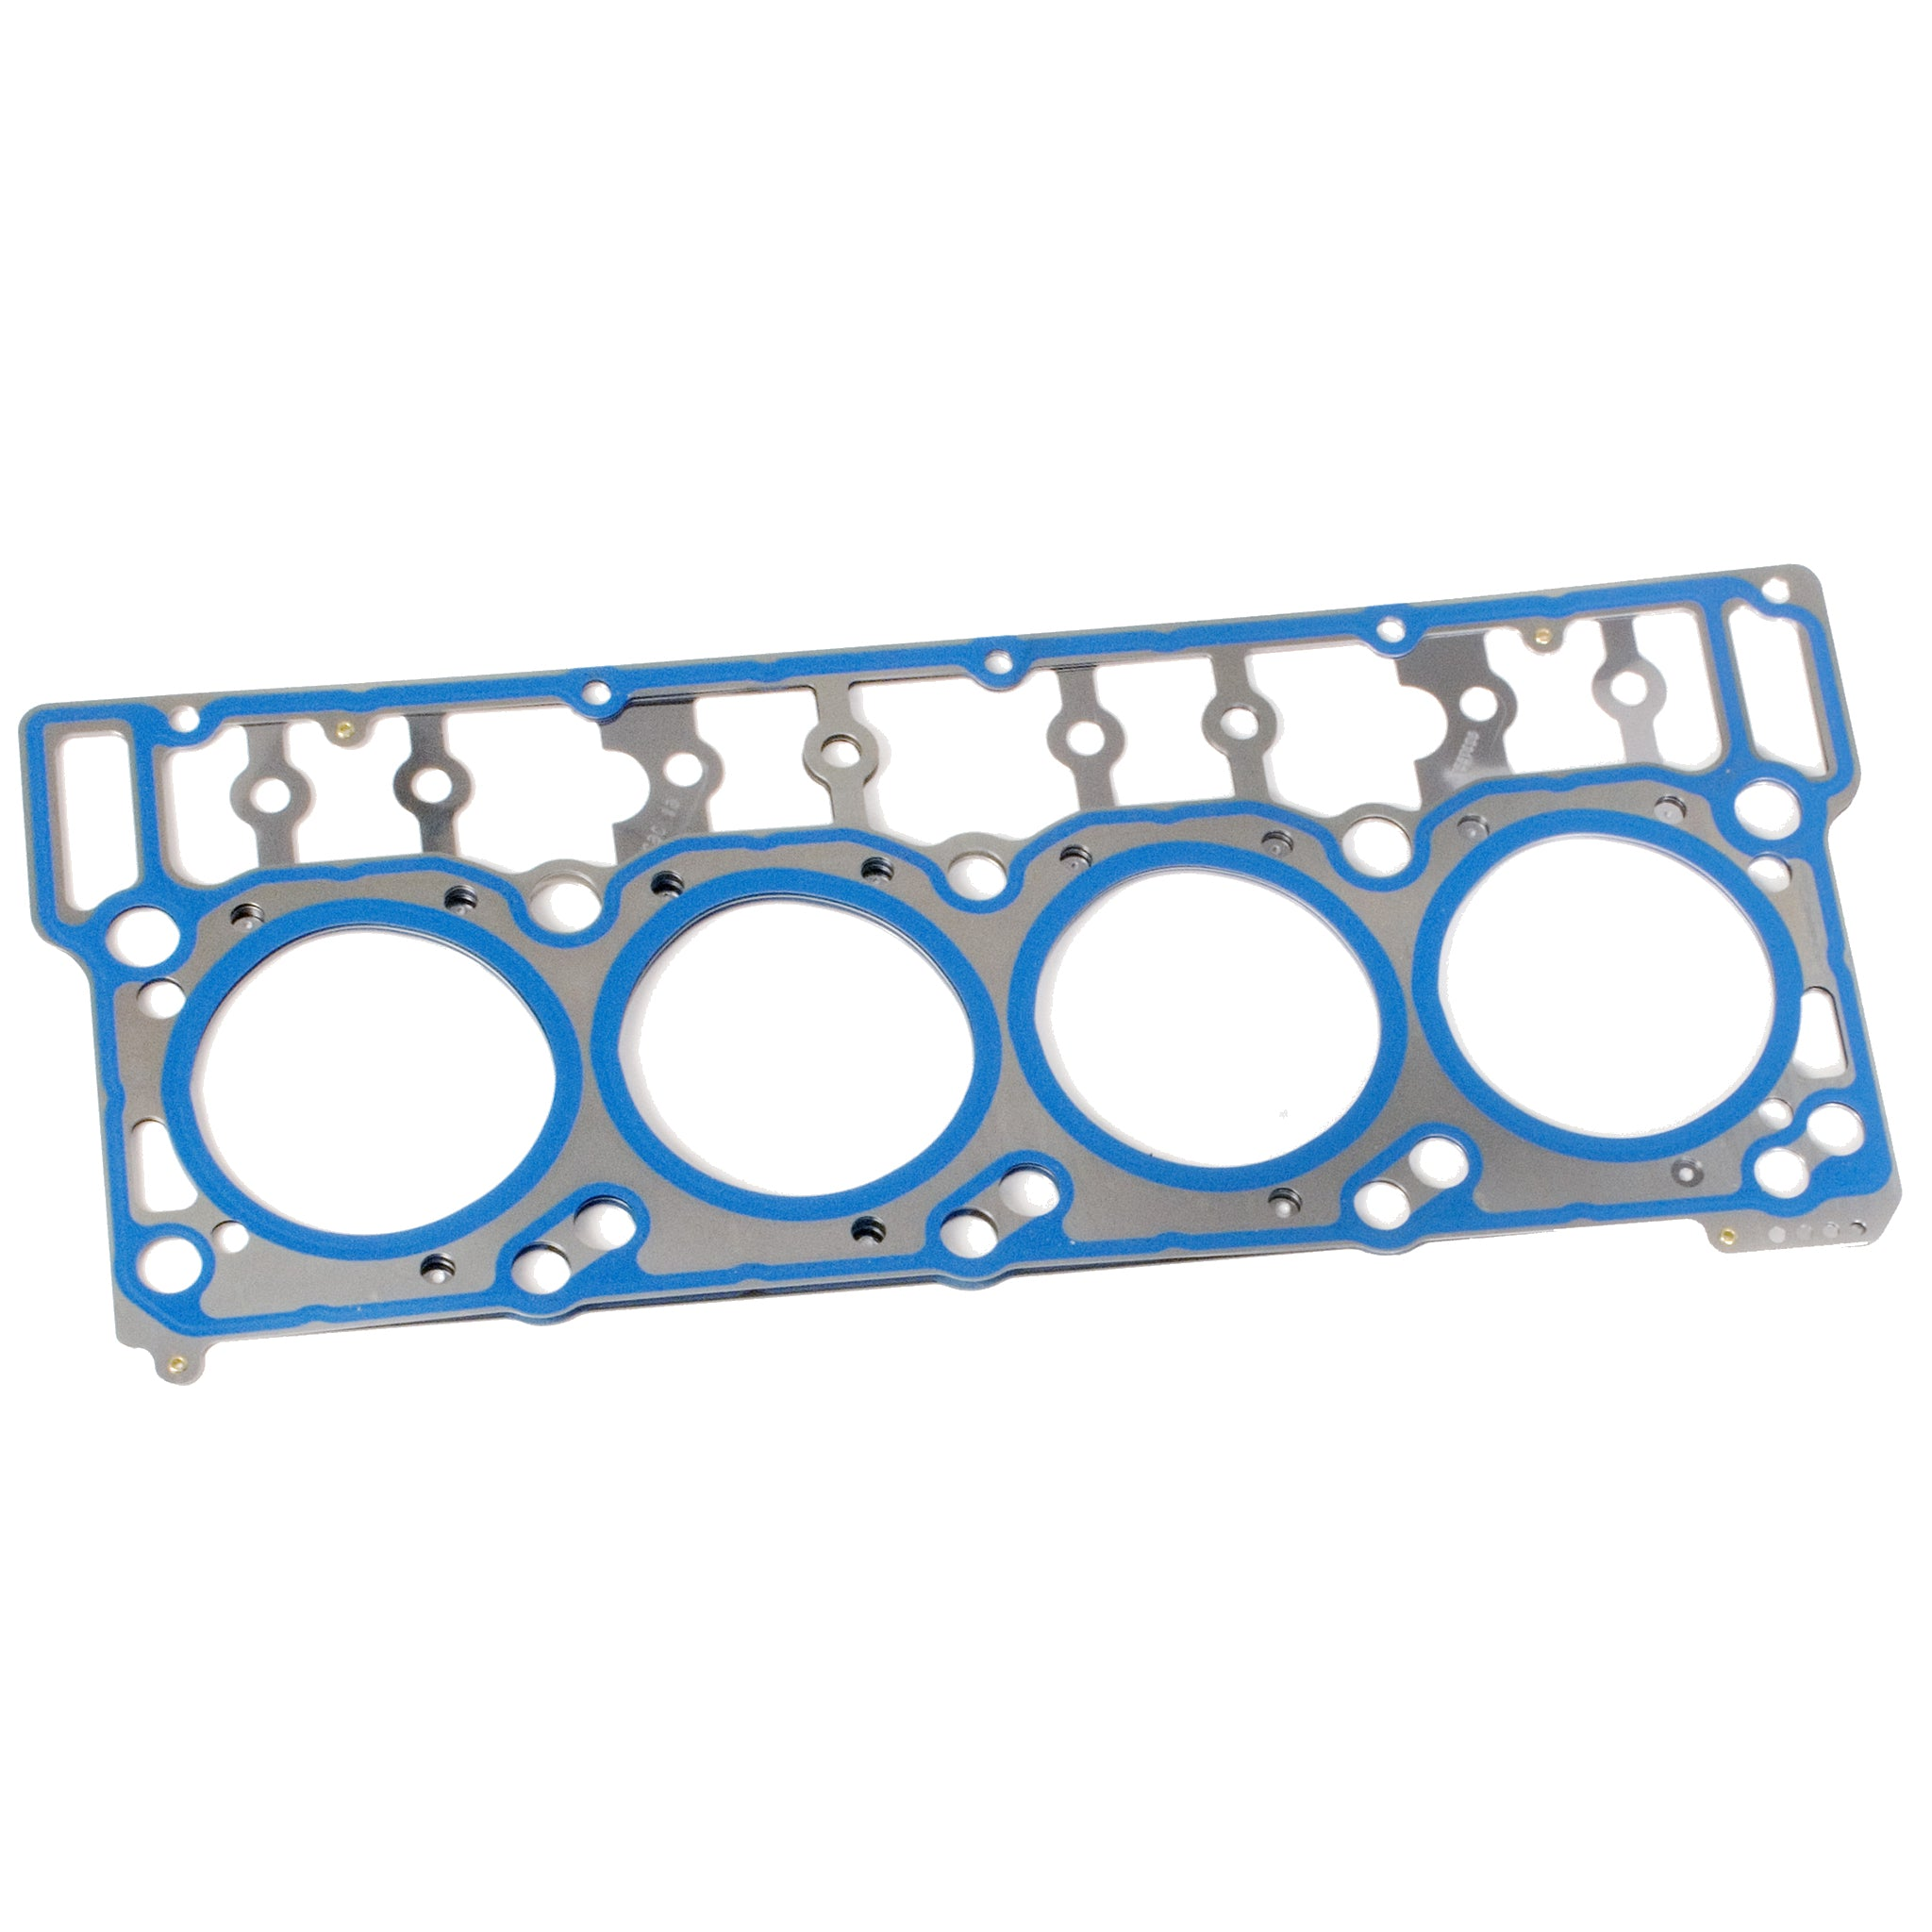 Head Gasket, 20mm, Ford 6.0L Diesel, Each,